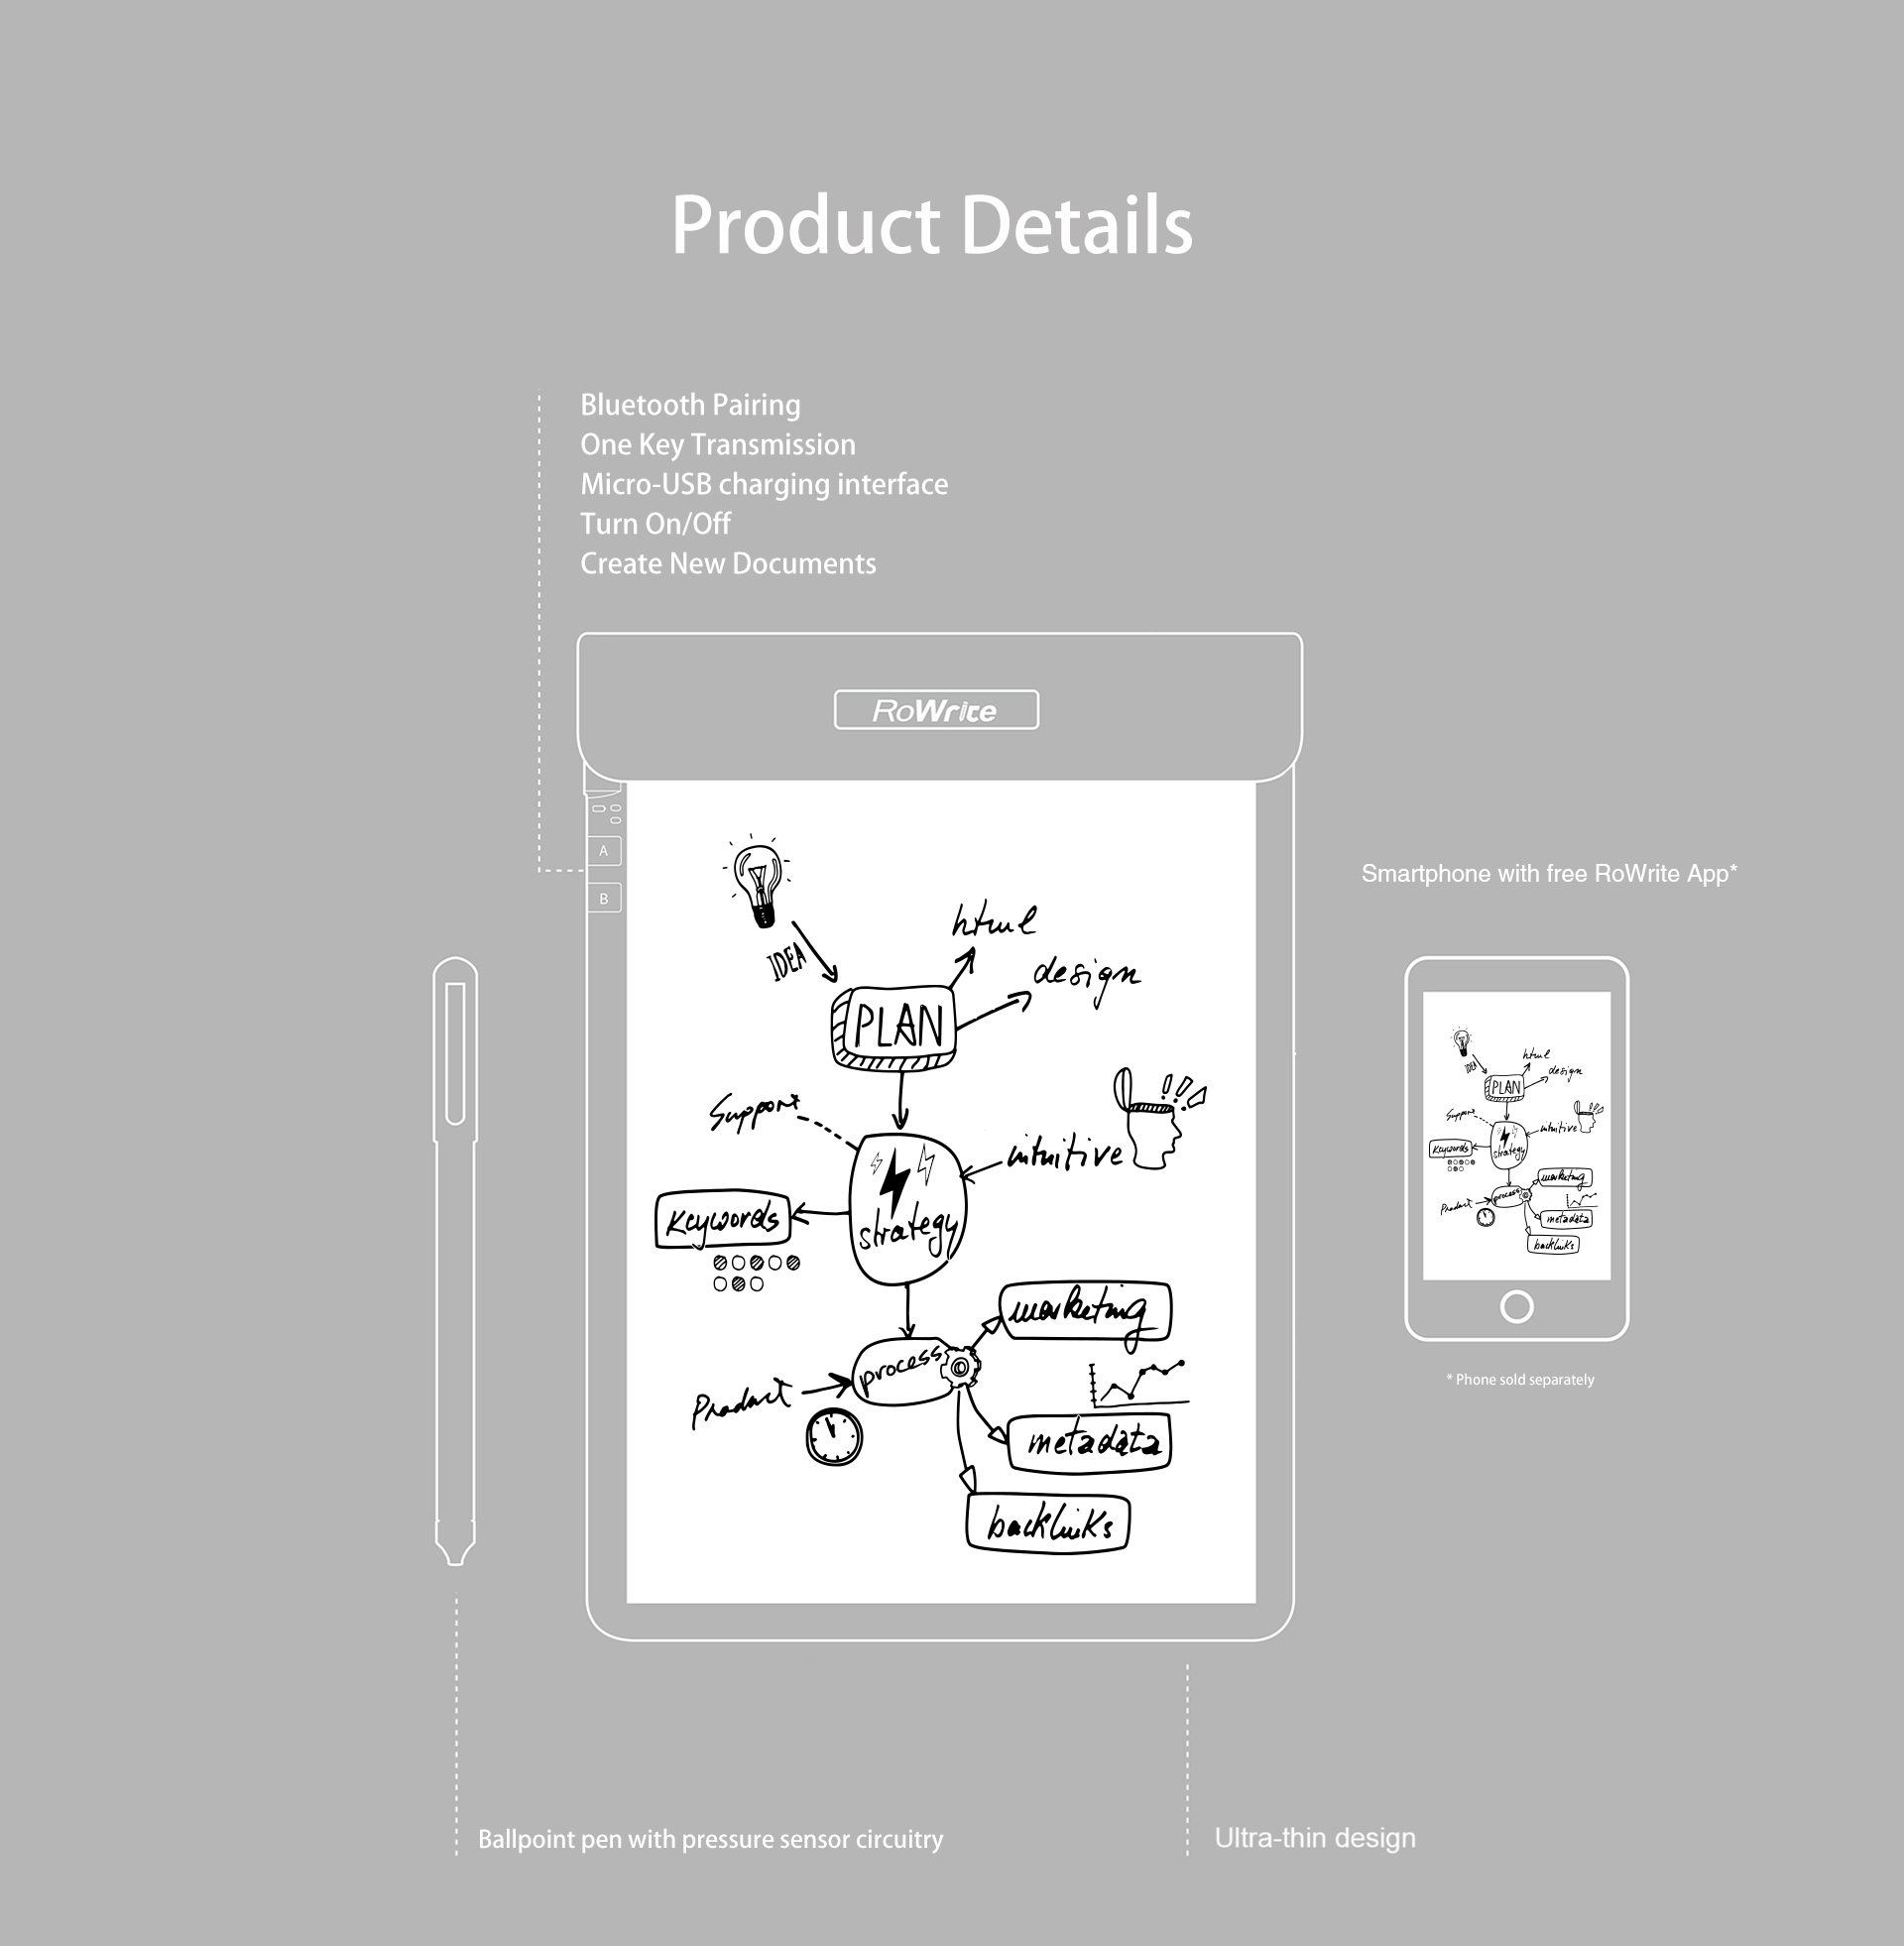 Rowrite Smart Writing Pad Royole Corporation Ballpoint Diagram And Notepad Royalty Free Stock Photos Sleek Lightweight Sophisticated Design